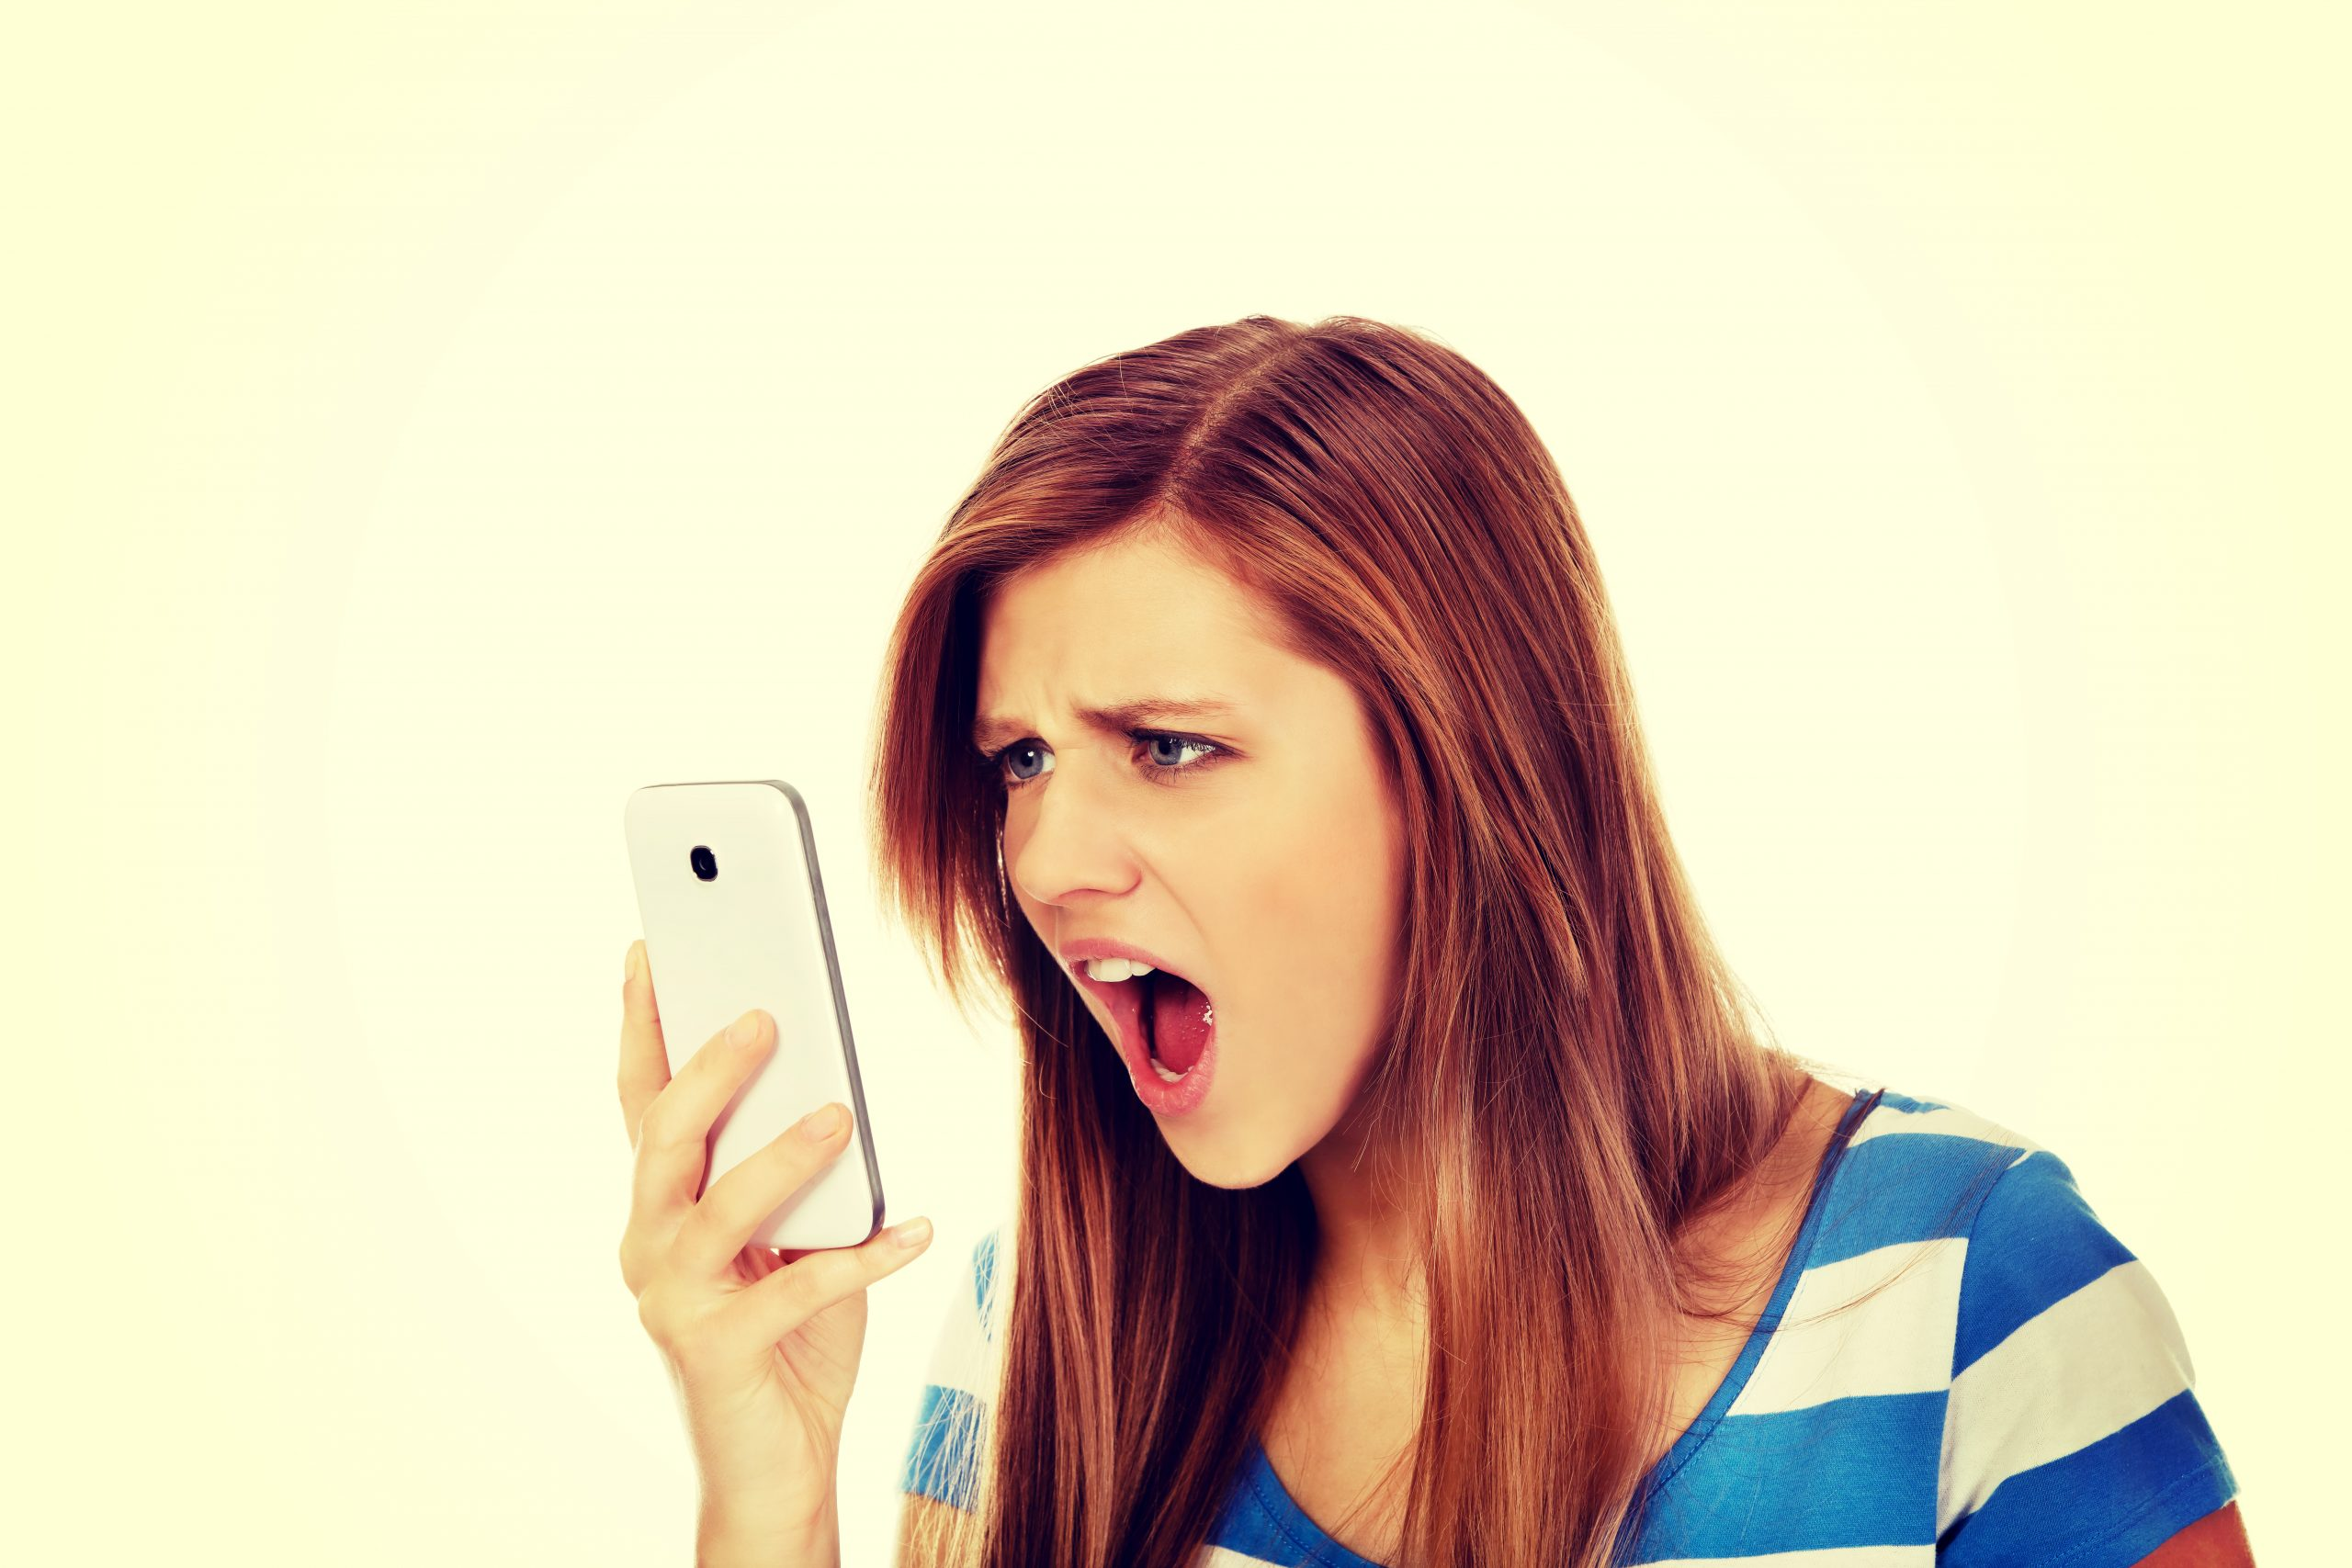 Angry young female teenager looking at her phone.